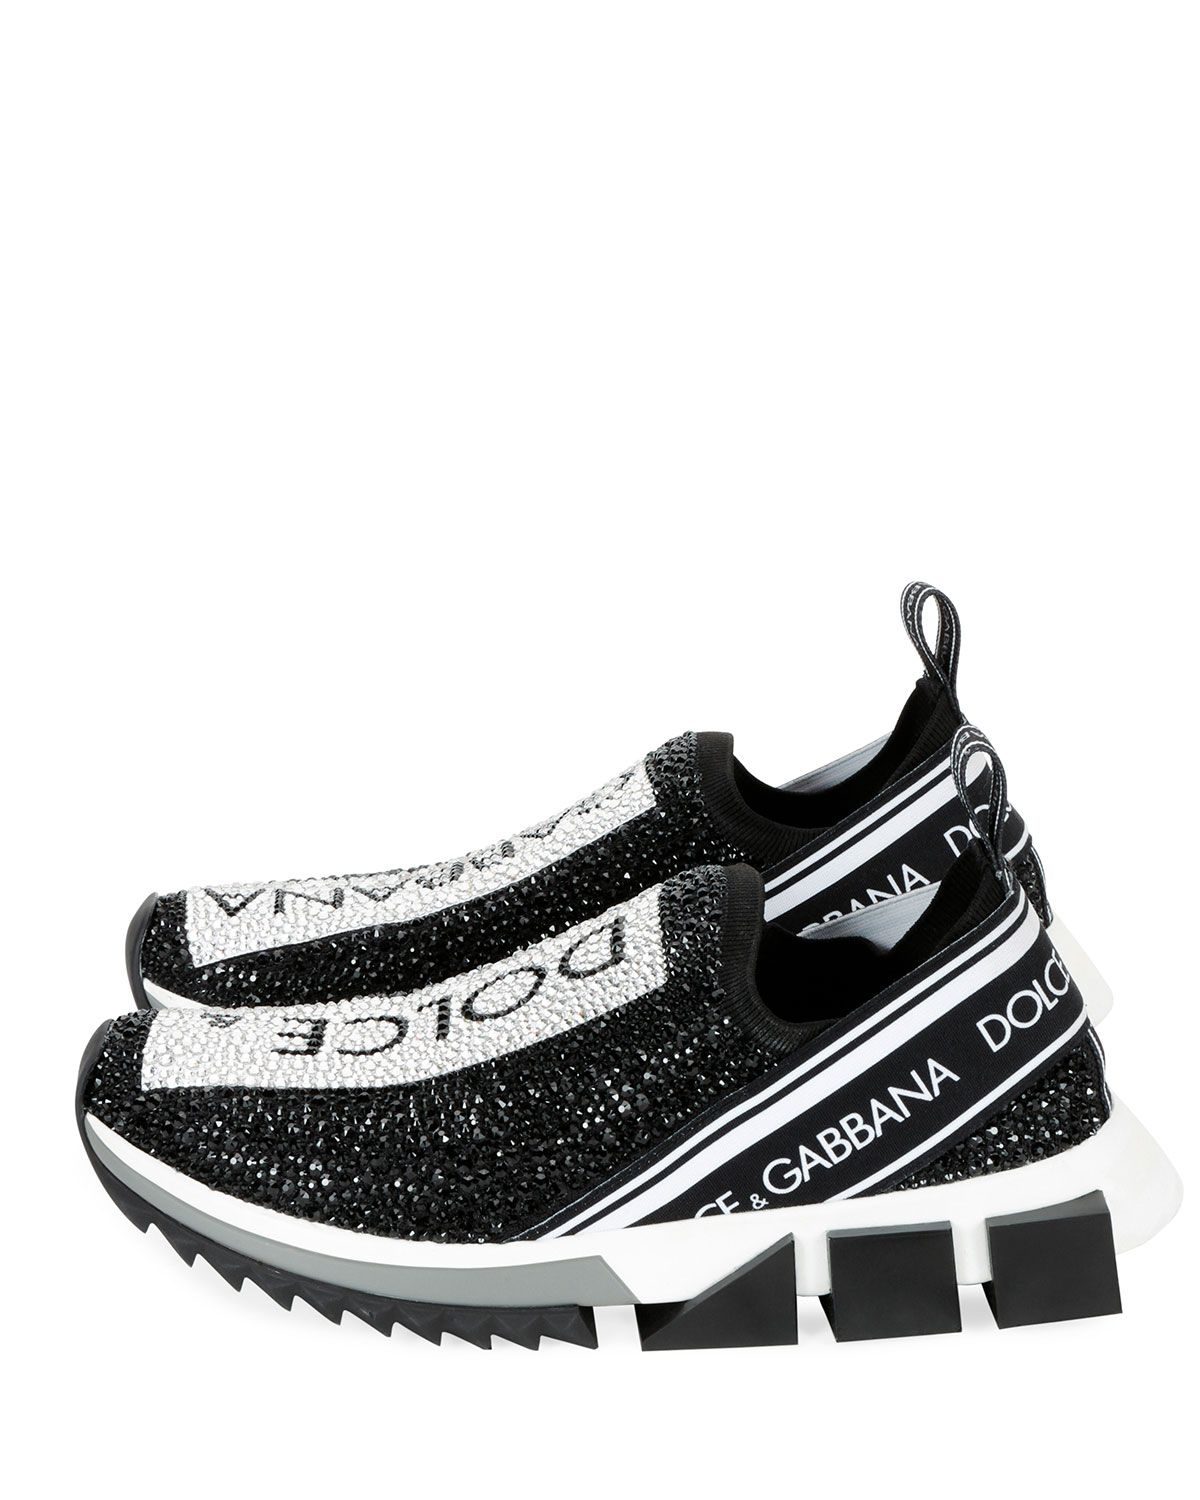 a61c0825ea6be Dolce & Gabbana Crystal Logo Slip-On Trainer Sneaker | Products in ...